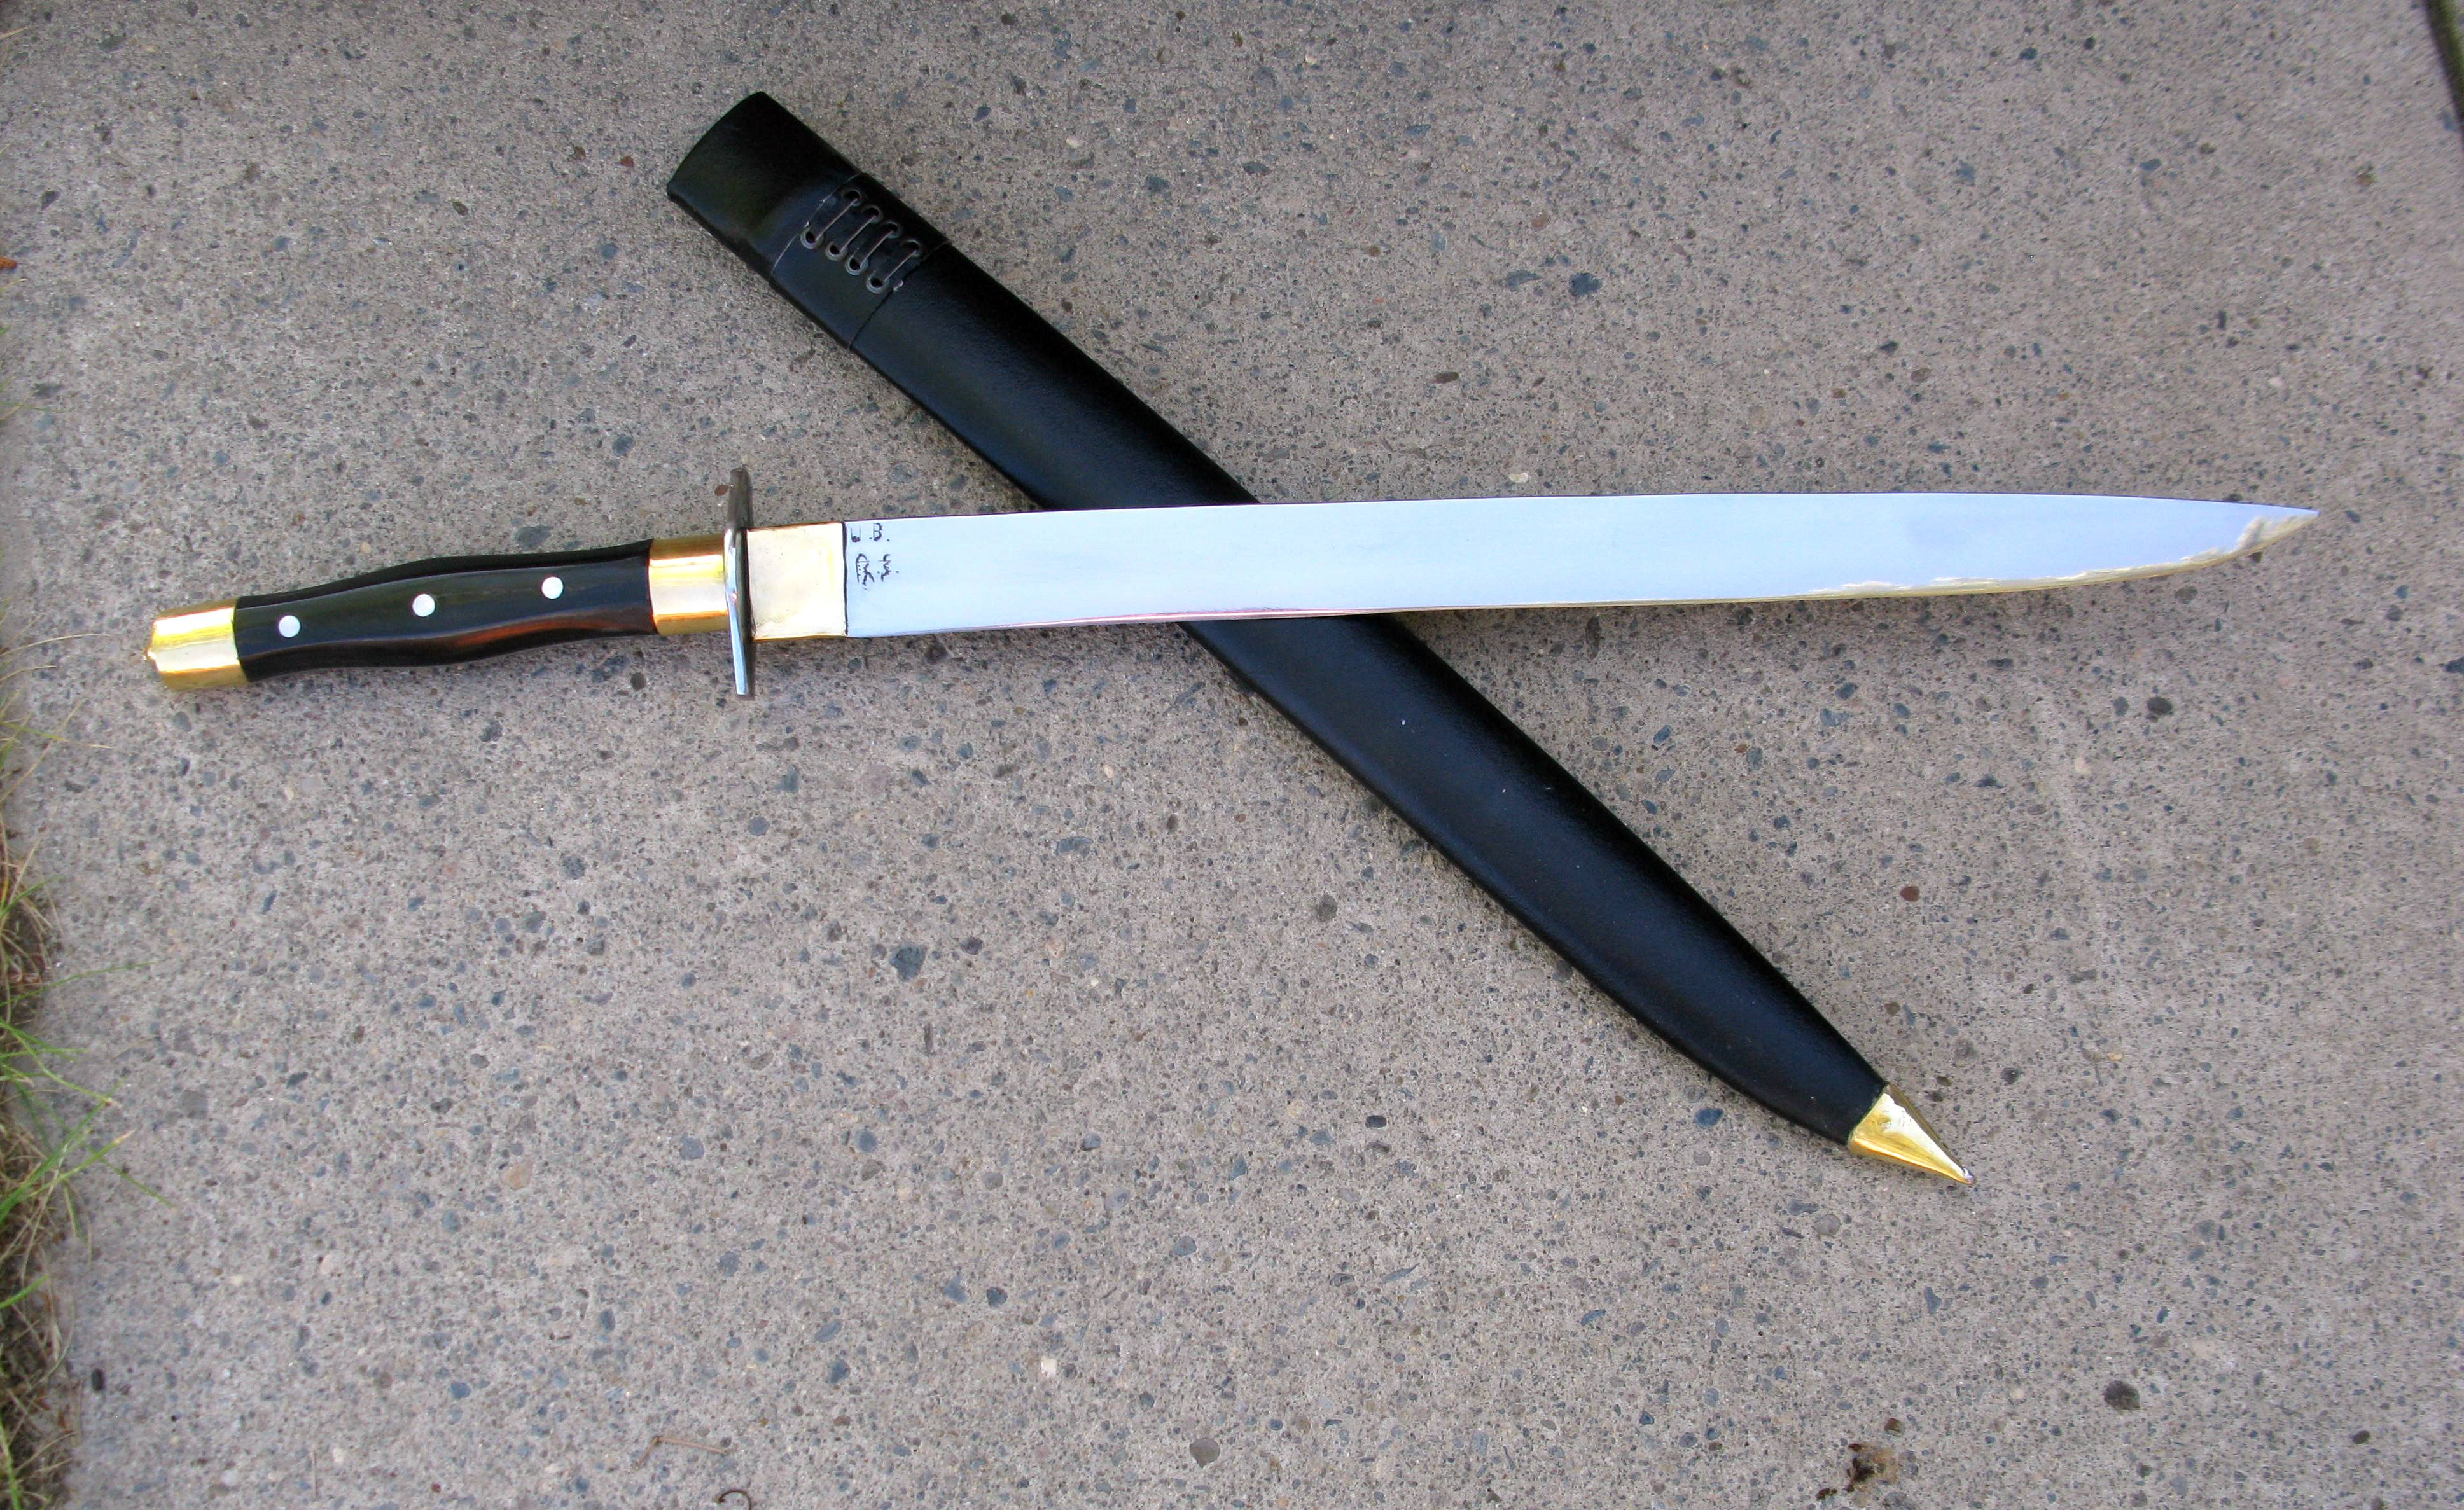 Up To 20 Inch Knife Blade